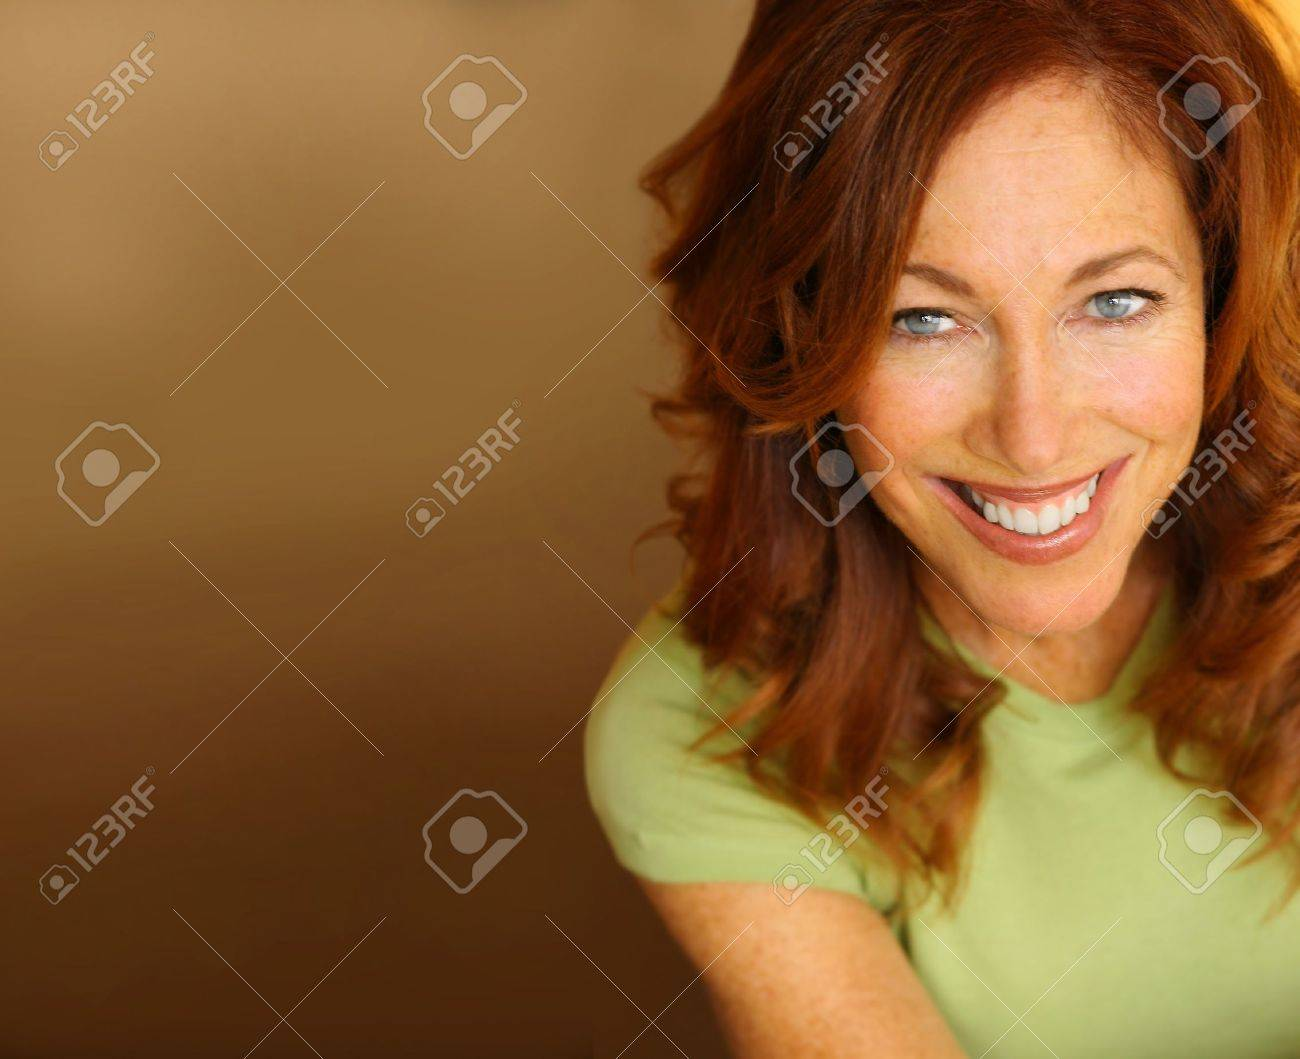 Portrait of a beautiful woman with big smile against neutral background - 10854670